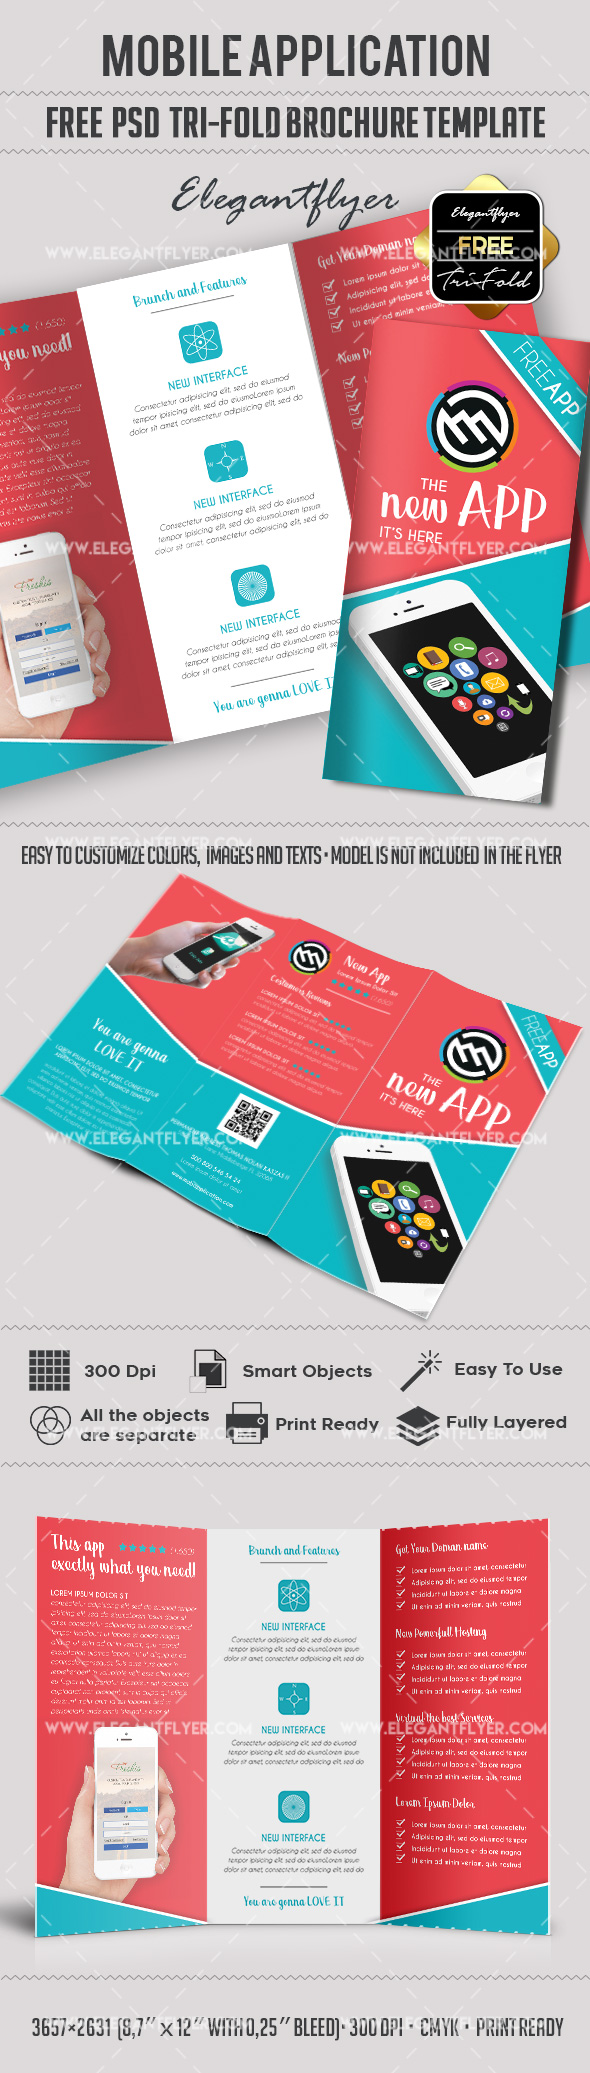 Free mobile application tri fold psd brochure by for Free templates for brochures tri fold